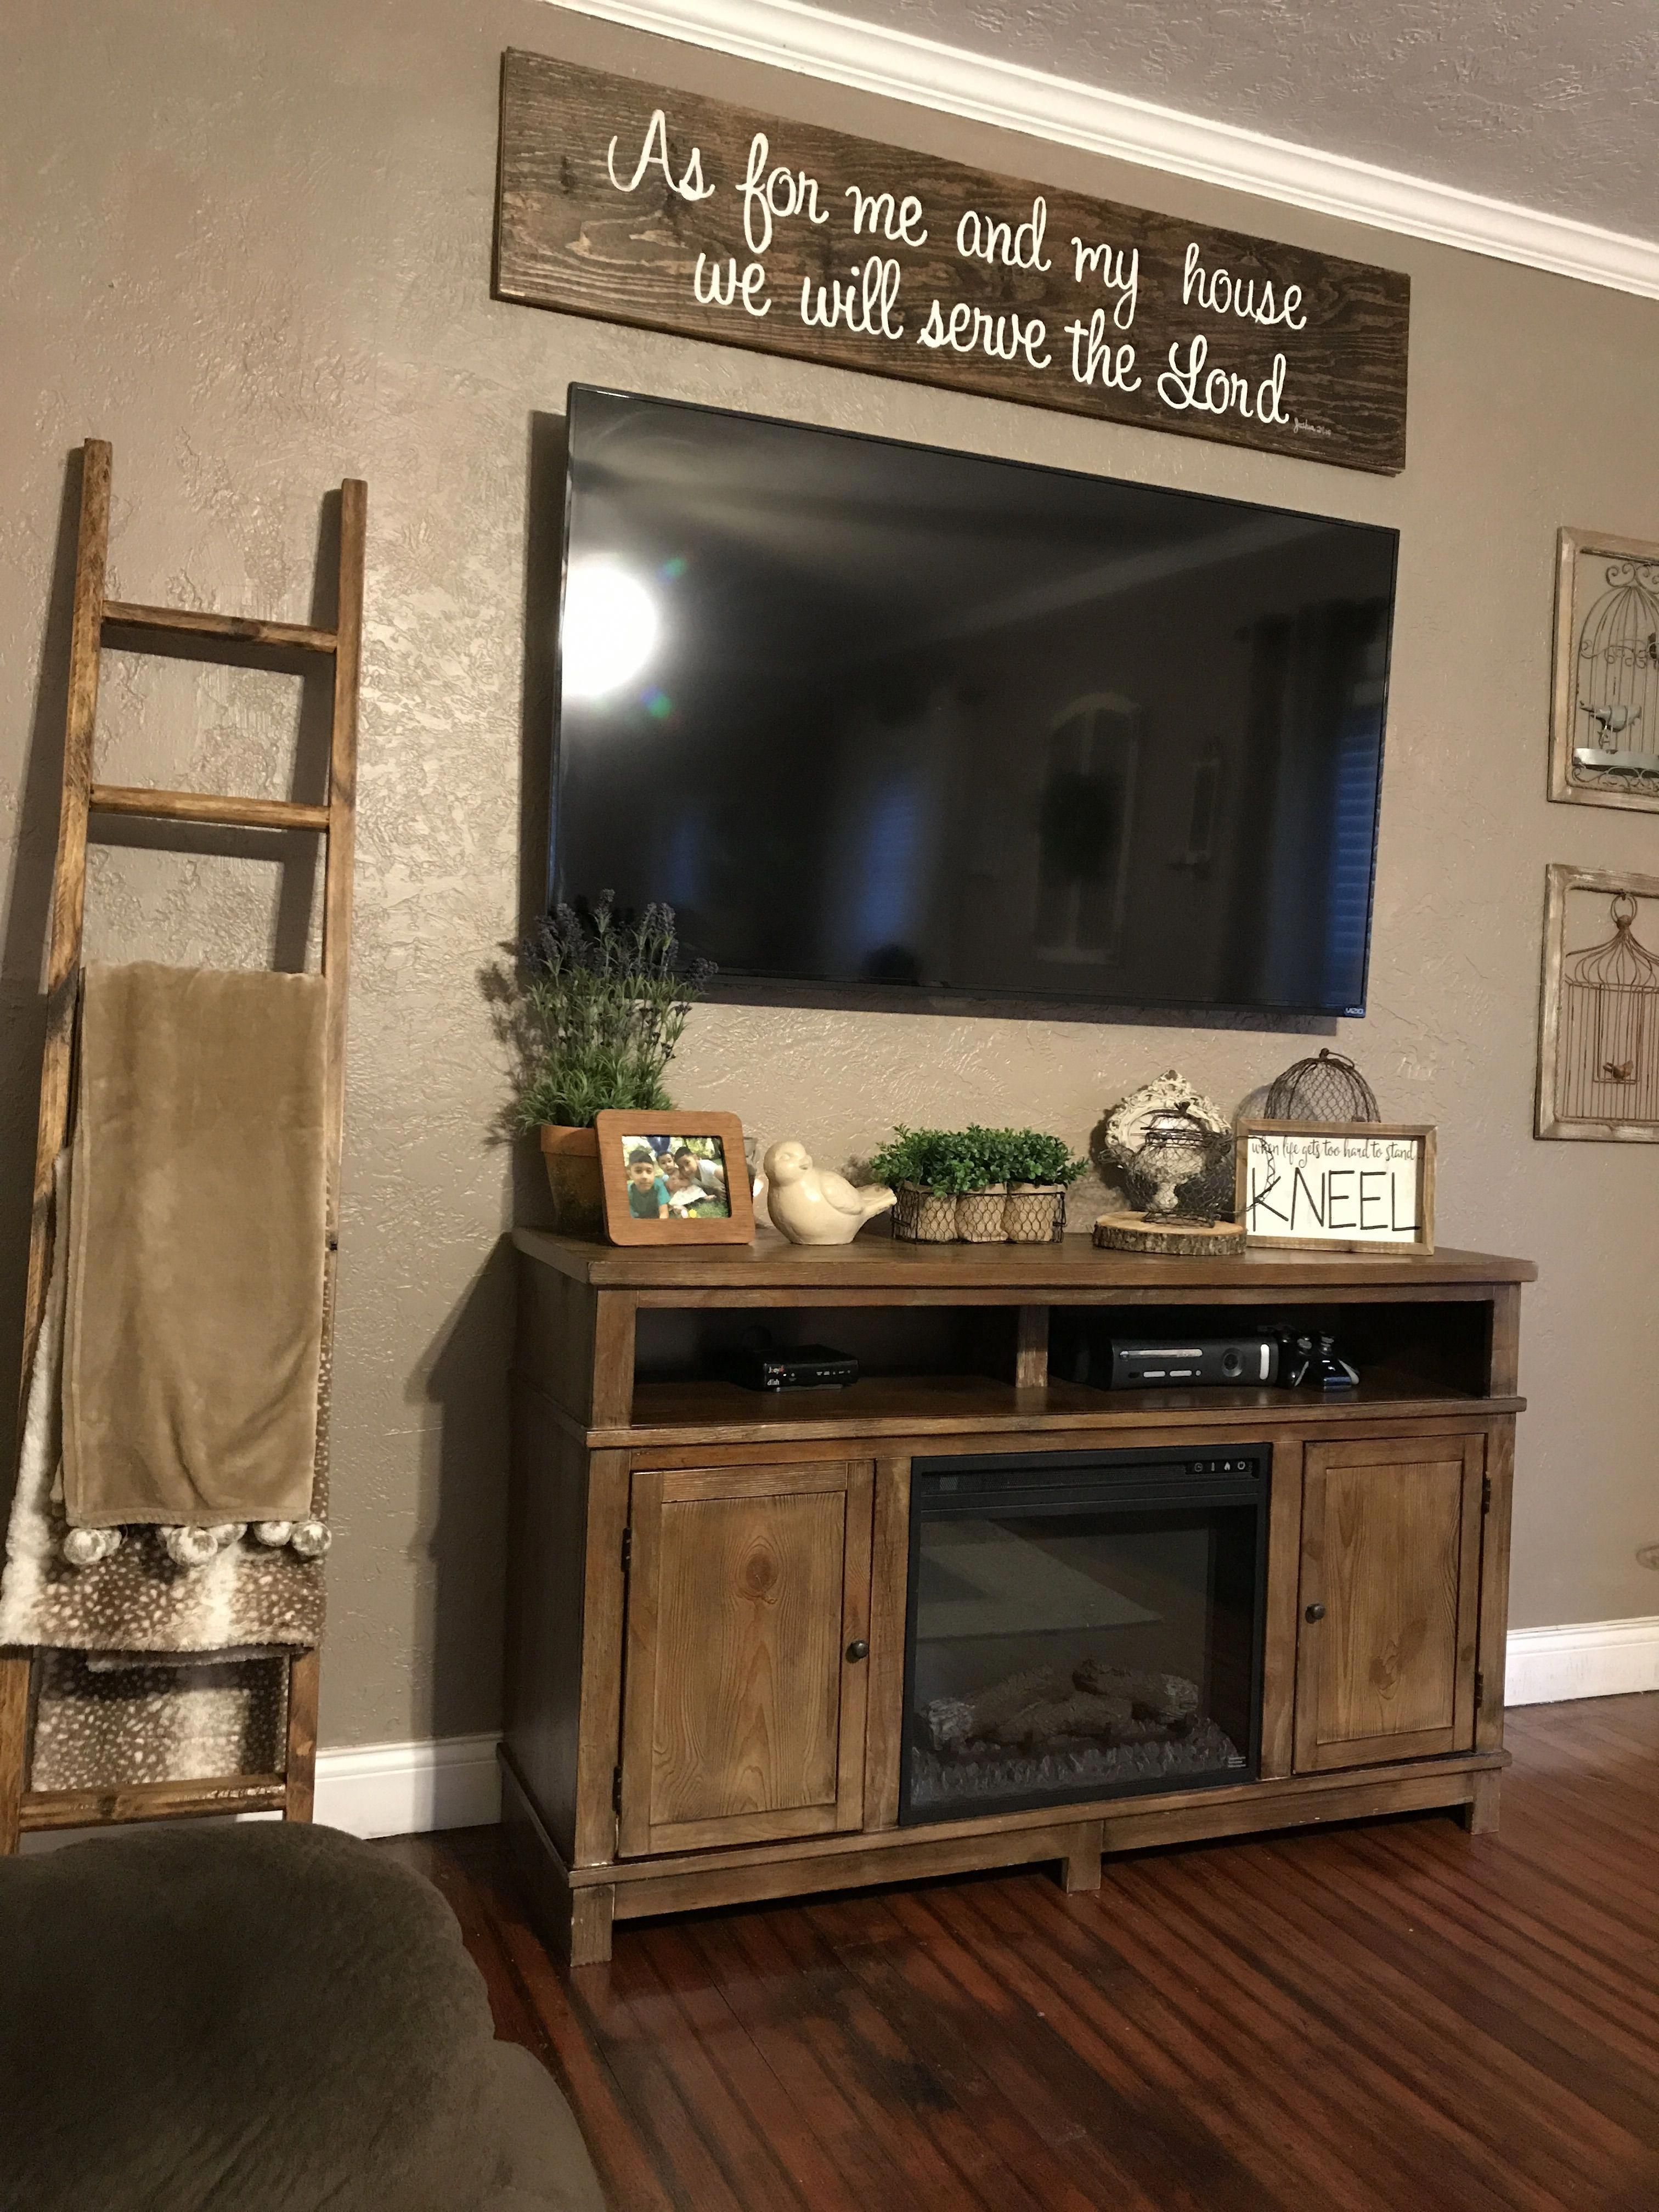 Explore Tv Wall Mount Ideas On Pinterest See More Ideas About